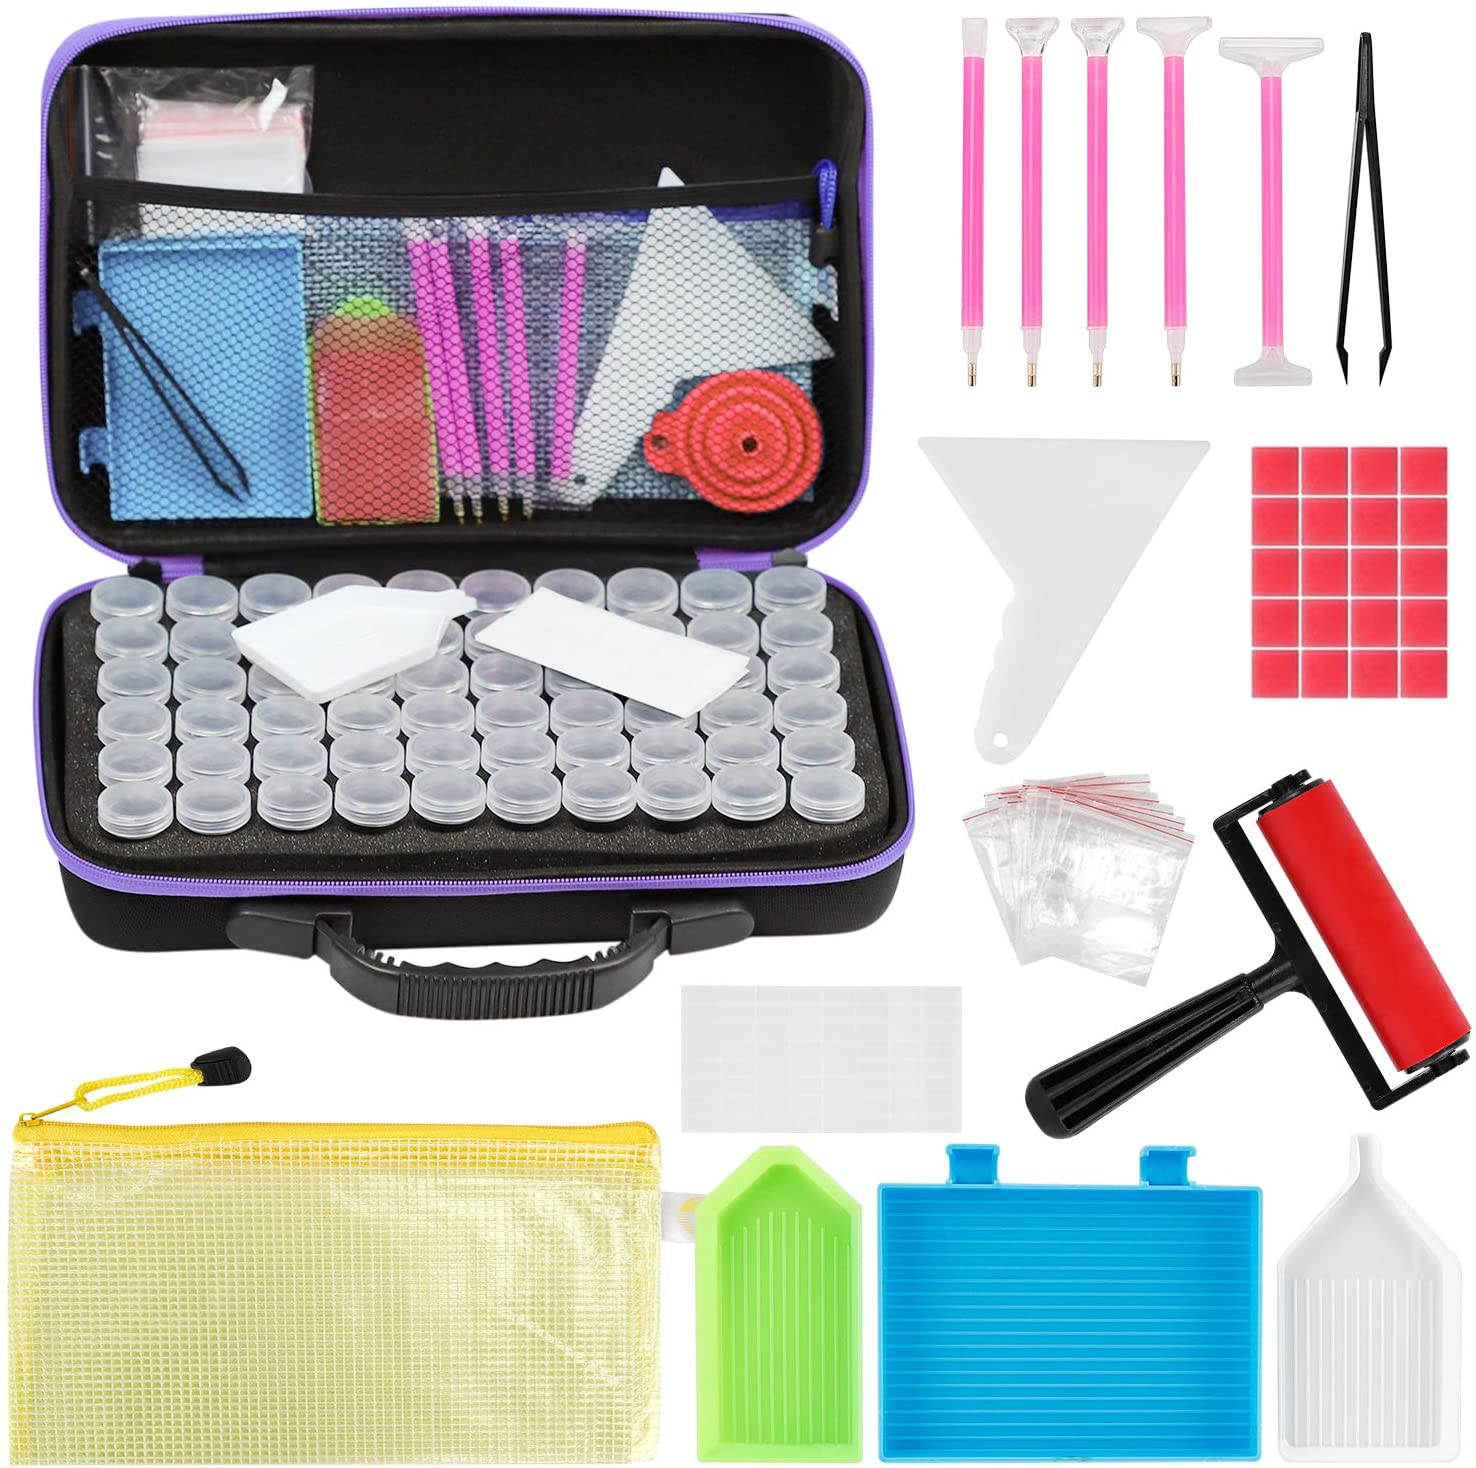 Toolly EVA 60 Slots Diamond Embroidery Painting Storage Case Purple Diamond Art Accessory Organizer Jewelry Beads Sewing Pills Shockproof Container Holder Clear Plastic Diamond Embroidery Box